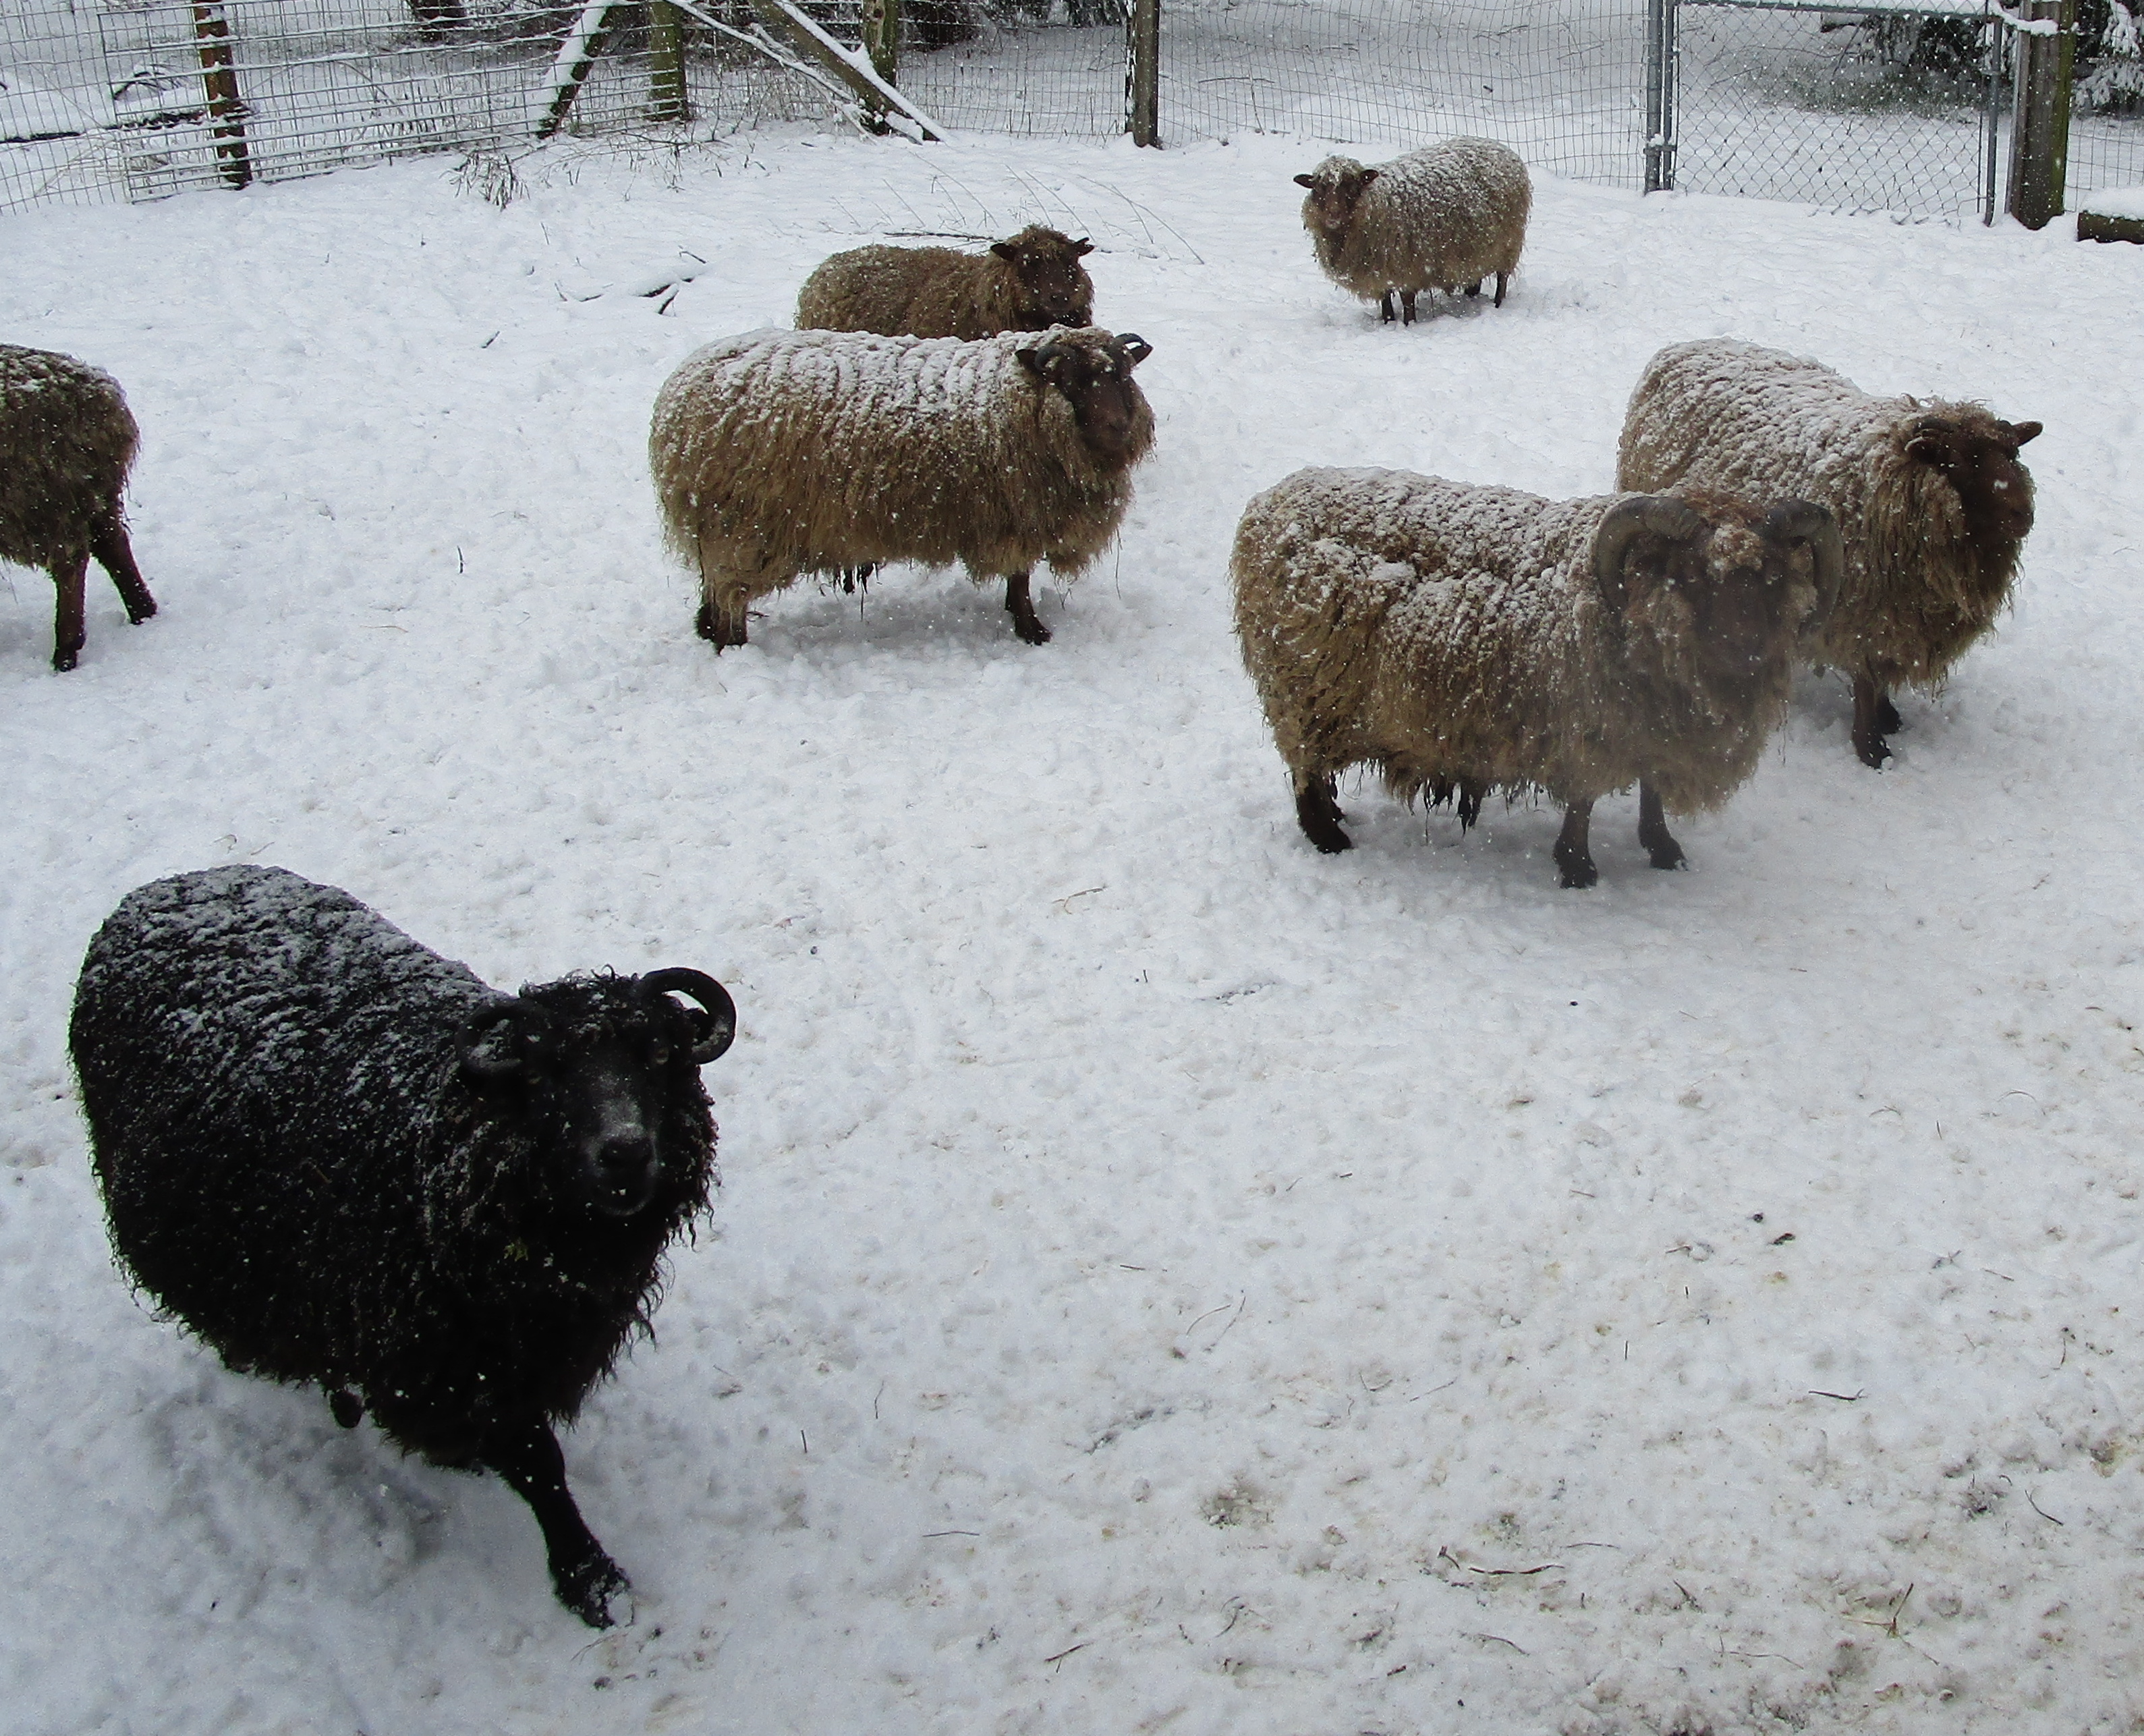 sheep proving the insulating quality of wool